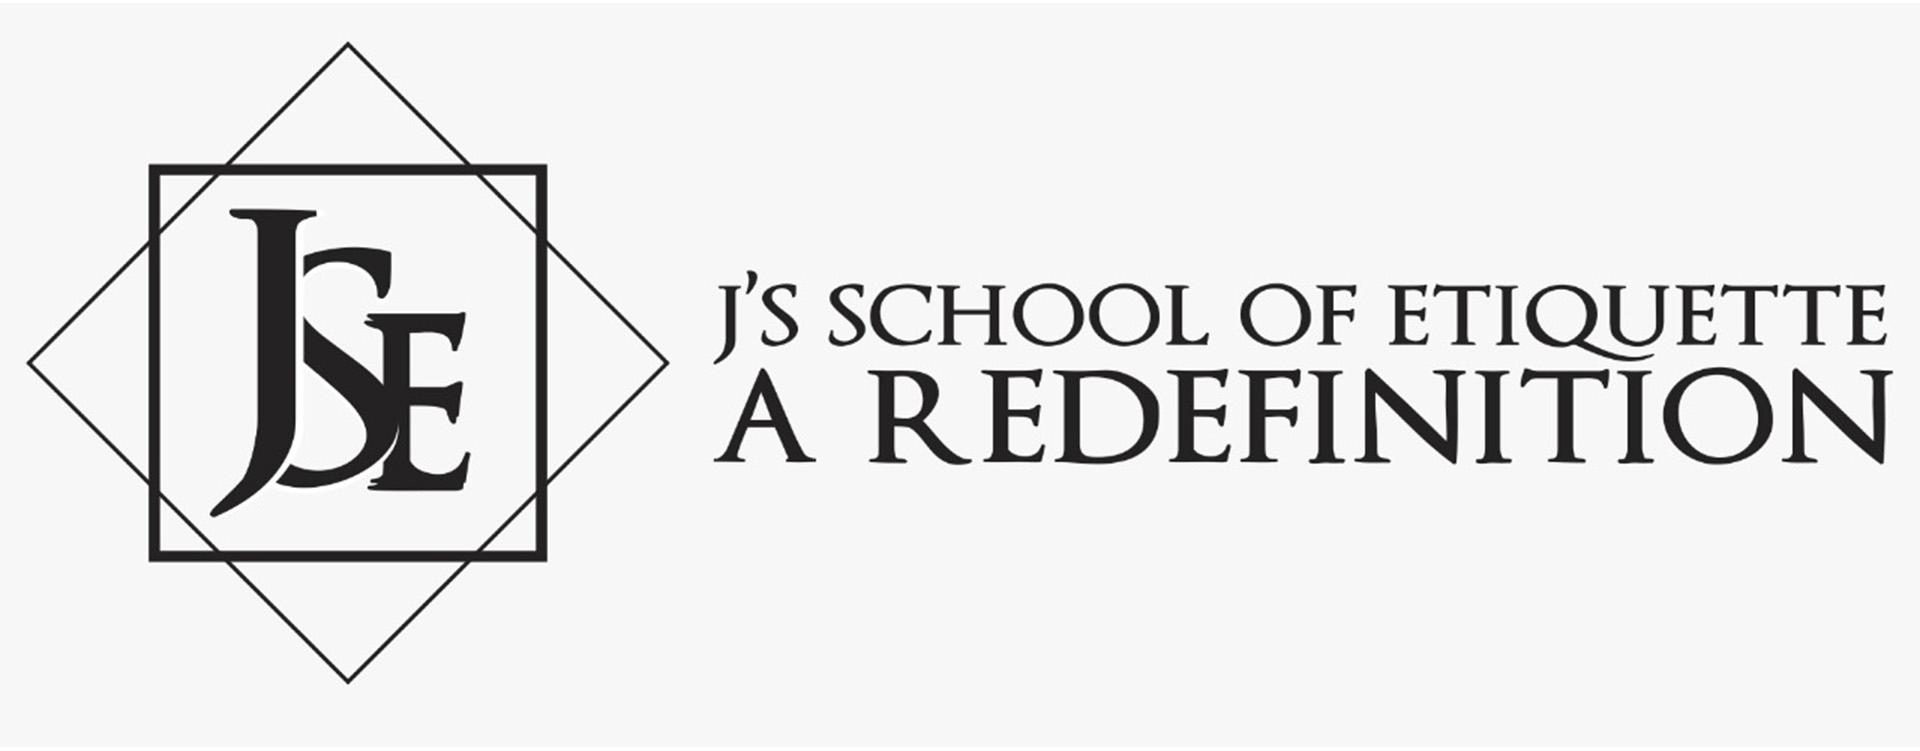 Course Classes Schedule of J's School of Etiquette | Best Finishing & Grooming Courses Provider in Pakistan, Islamabad, Lahore, Karachi